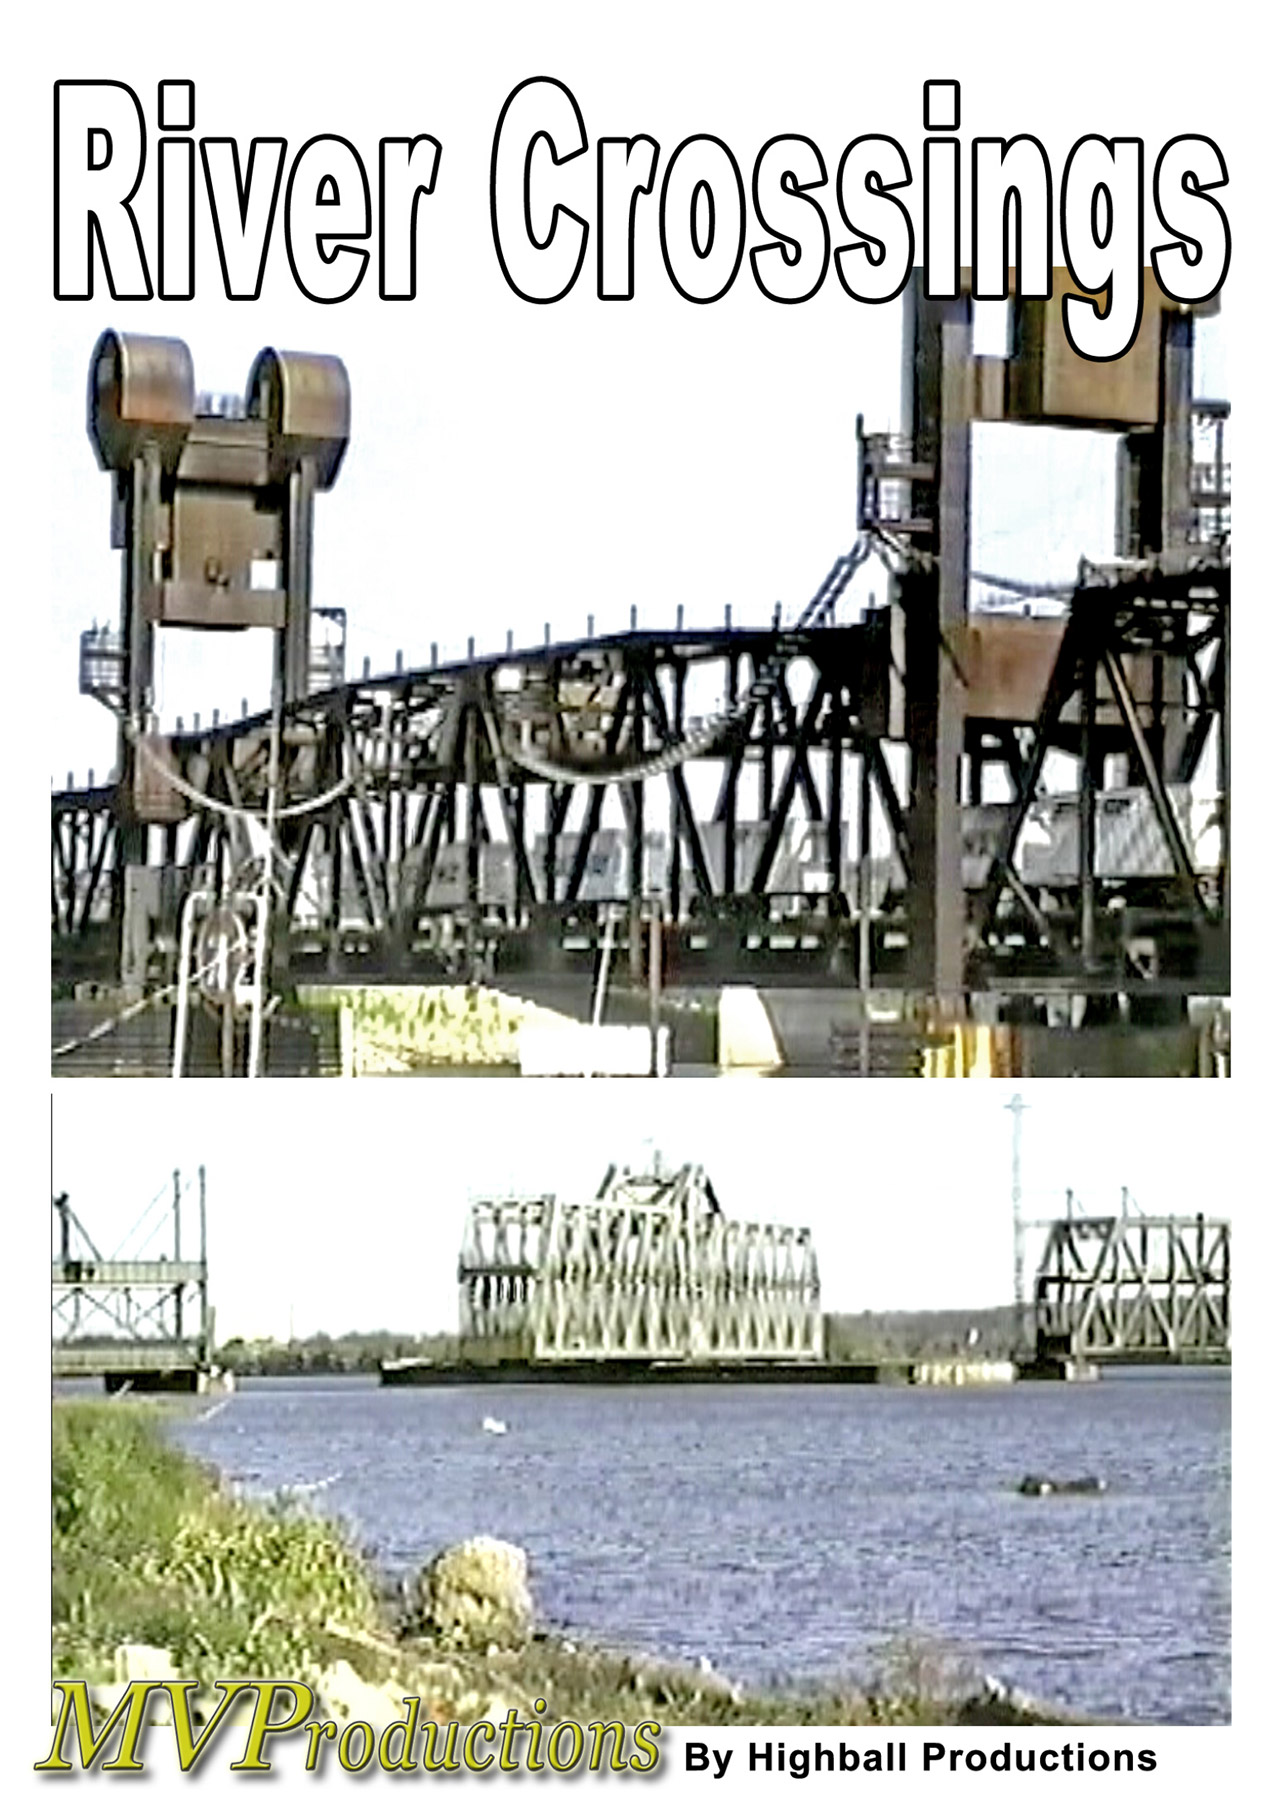 River Crossings Midwest Video Productions MVRC 601577879961